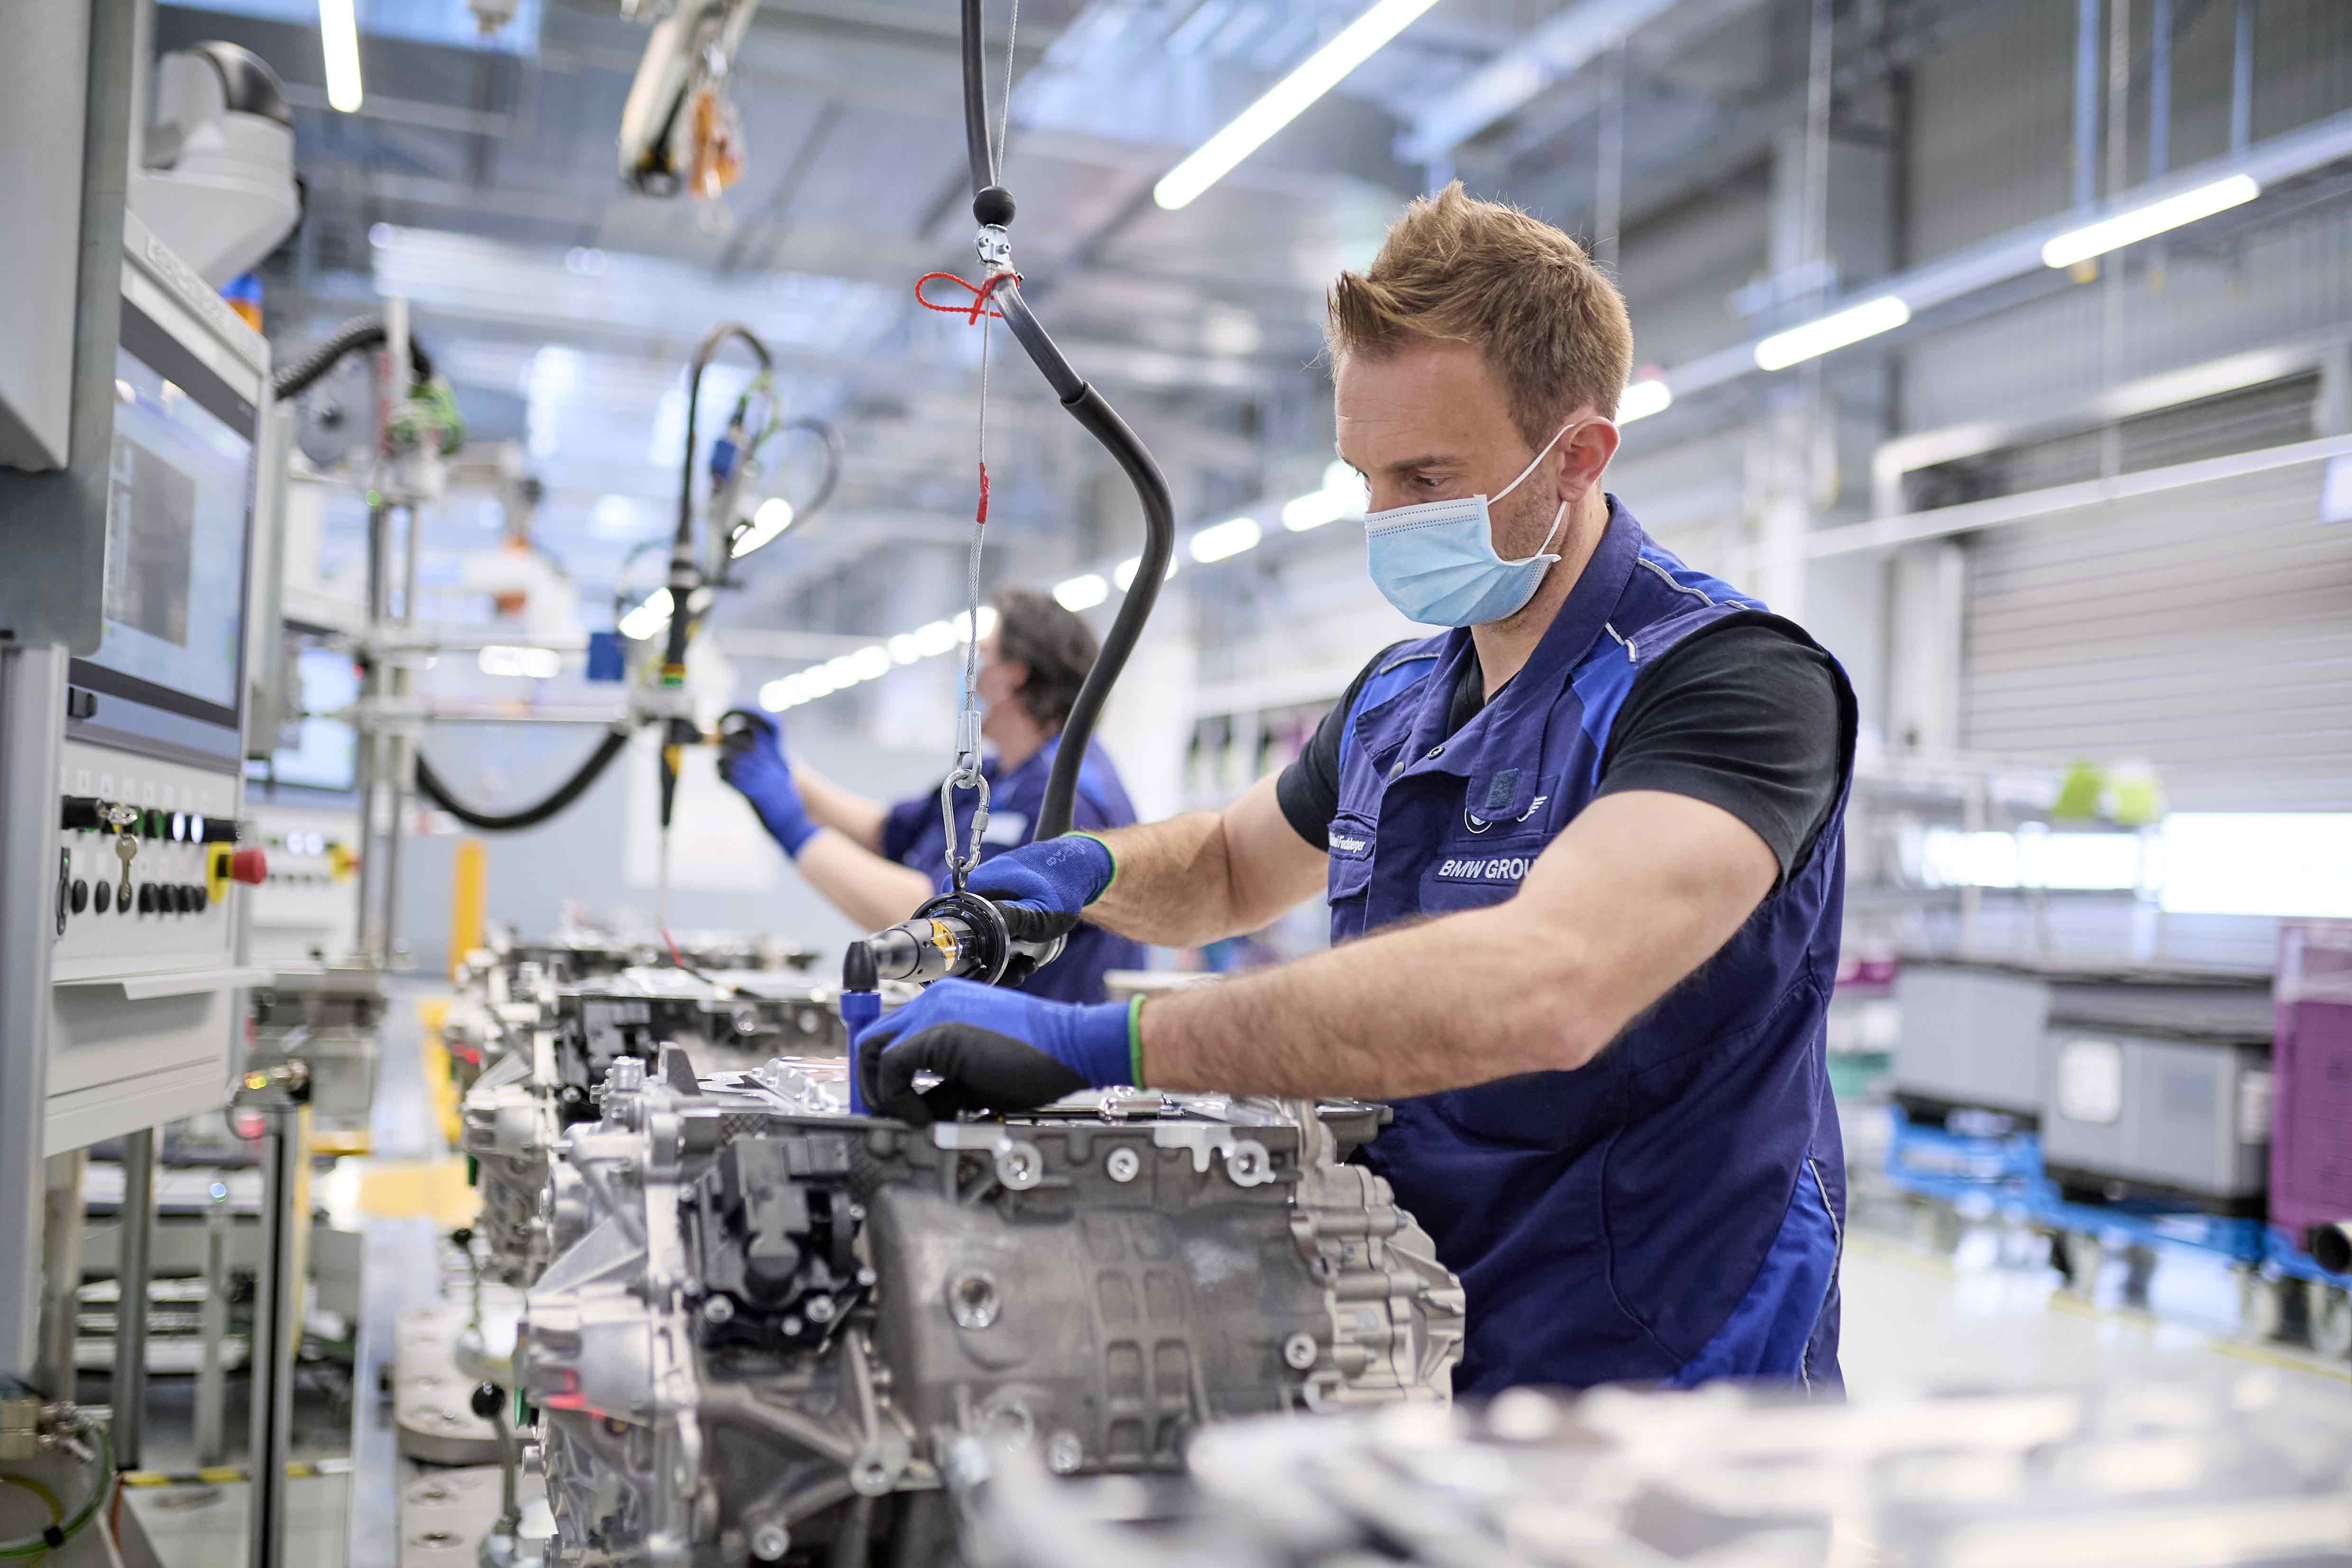 E-drive train production for the fully-electric models BMW iX and BMW i4 begins